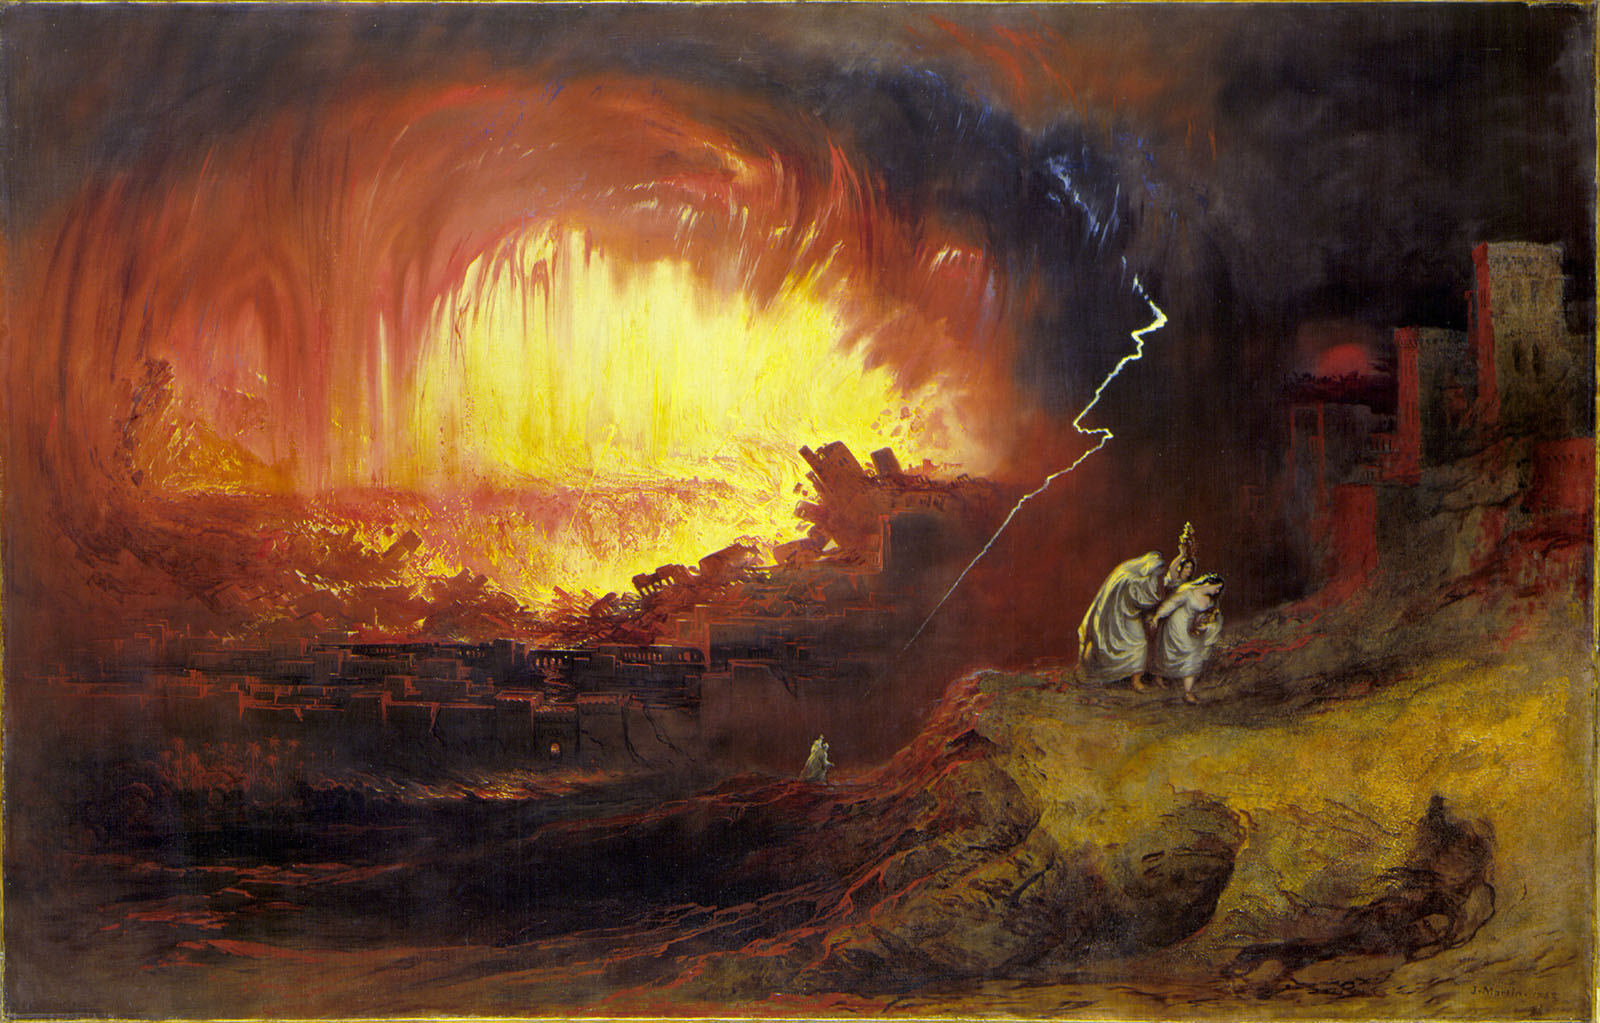 Why Did God Kill All the Men, Women, and Children in Sodom?